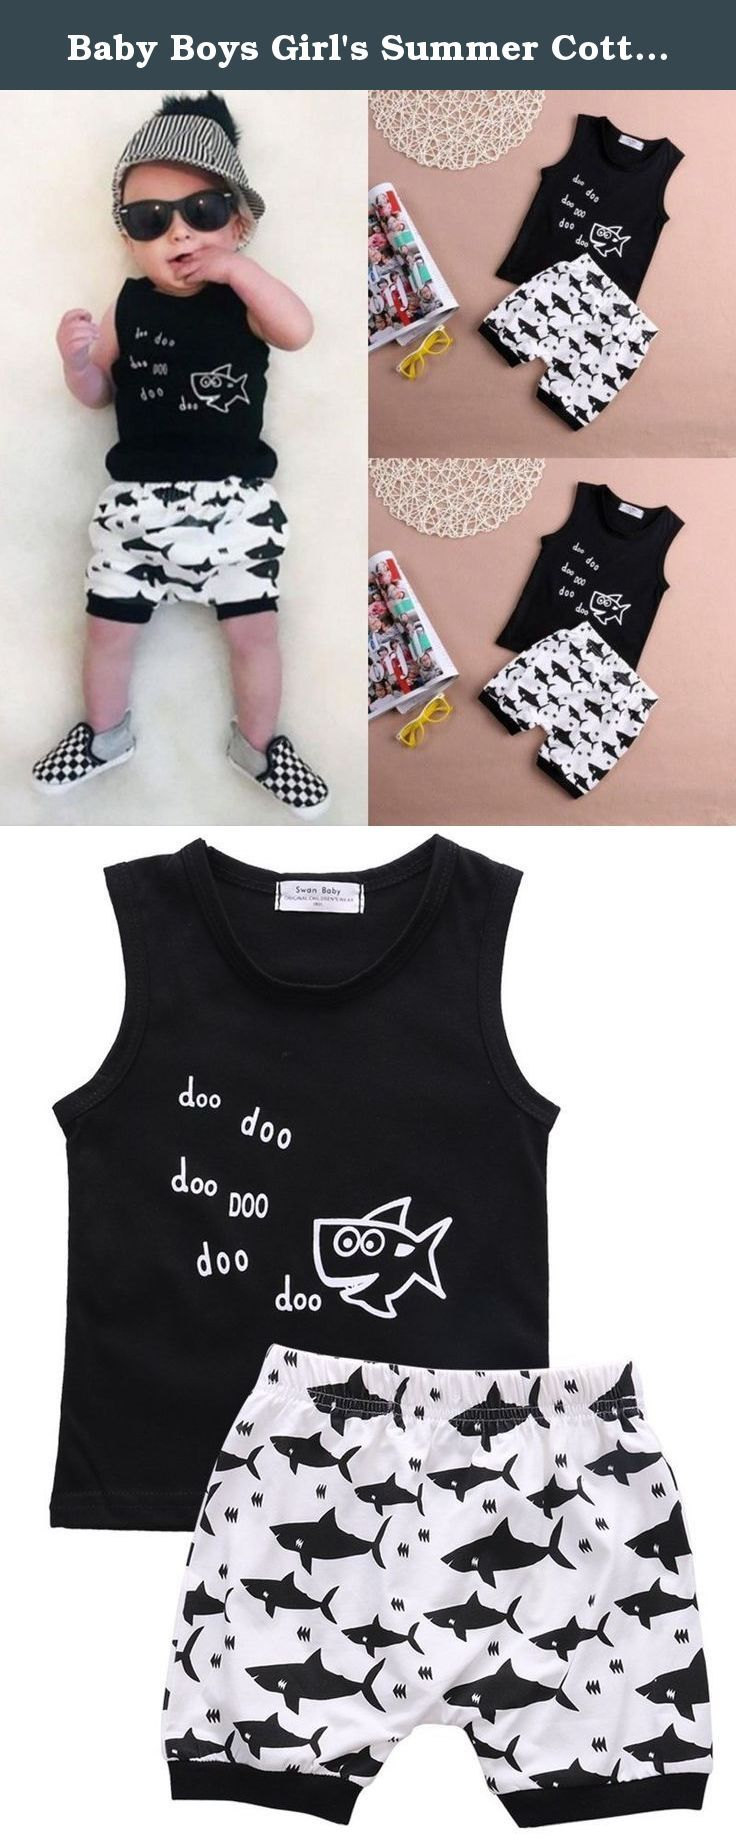 78445866 Baby Boys Girl's Summer Cotton Sleeveless Outfits Set Tops+Pants (6-12  Months